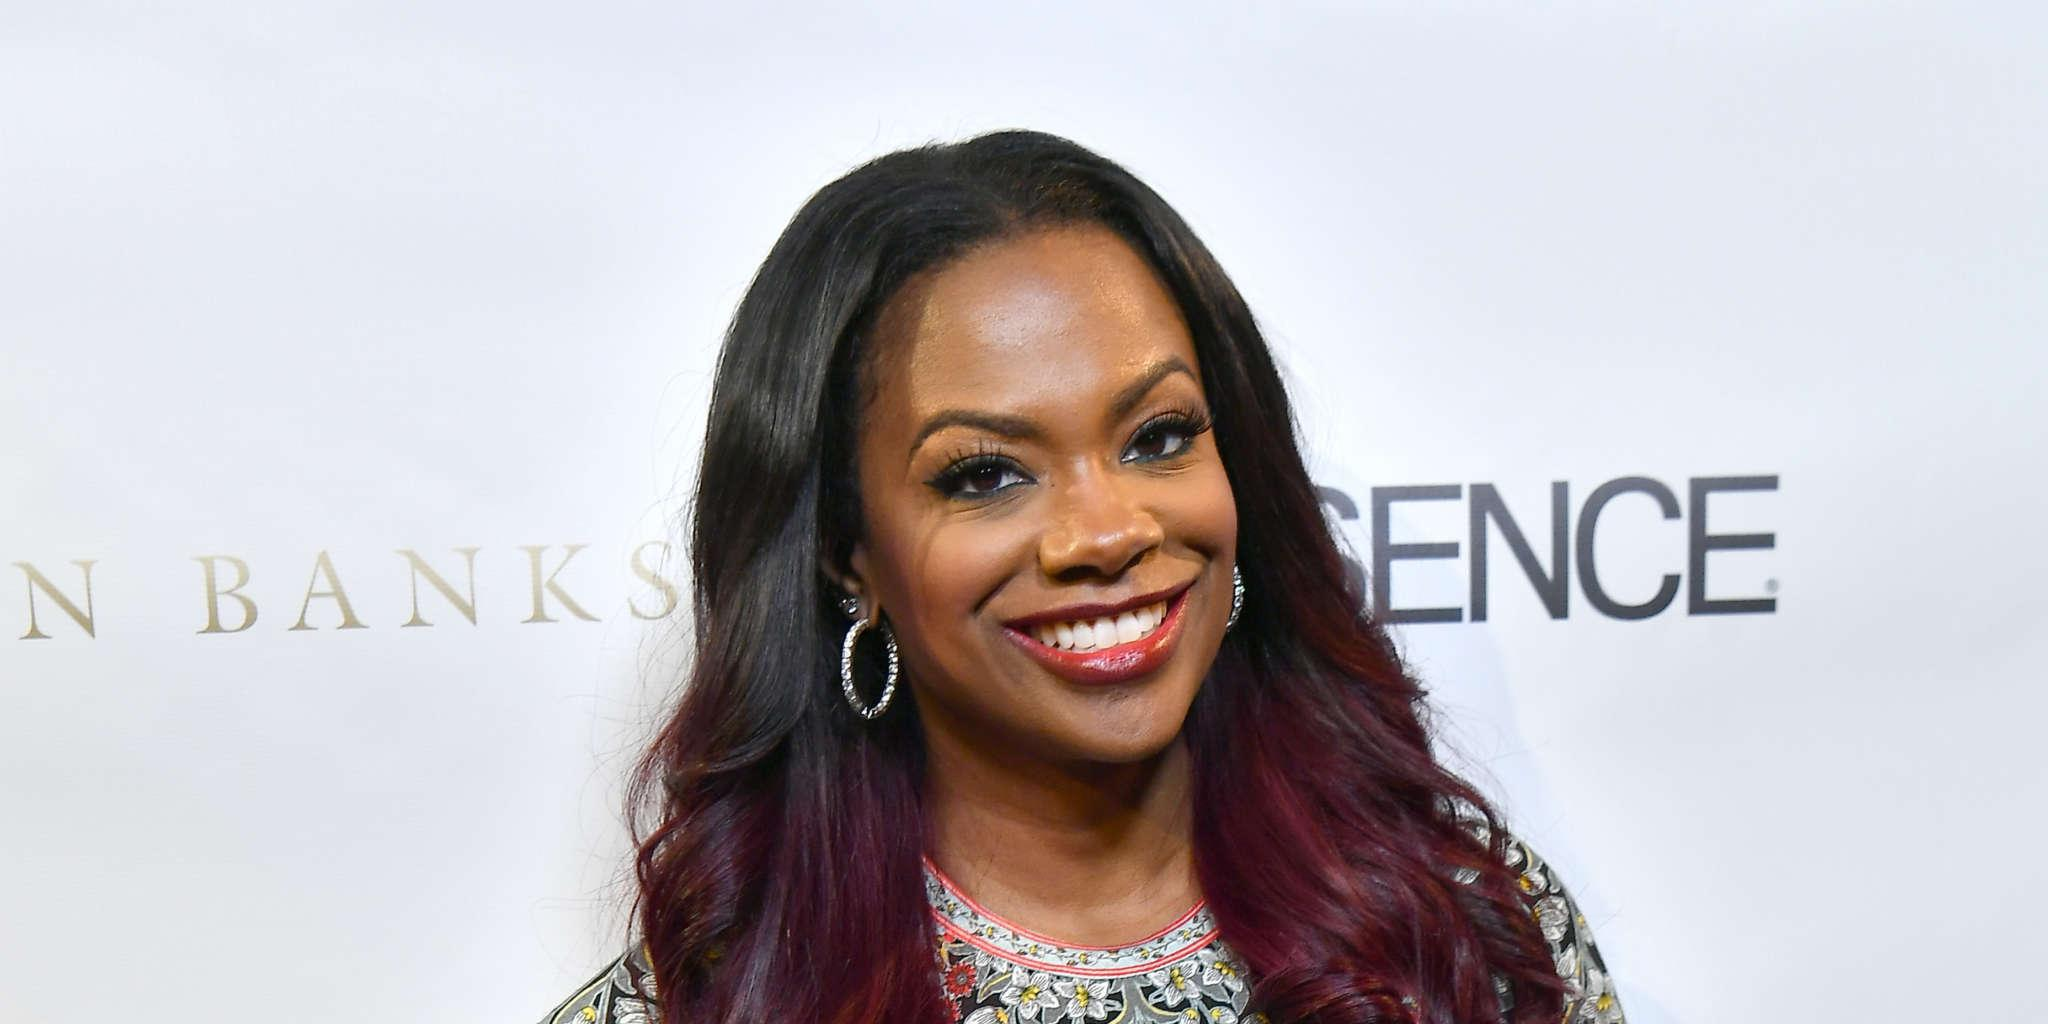 Kandi Burruss Shared A Throwback Photo From RHOA's Season 4, Telling Fans She Wants To Change Her Hair Color